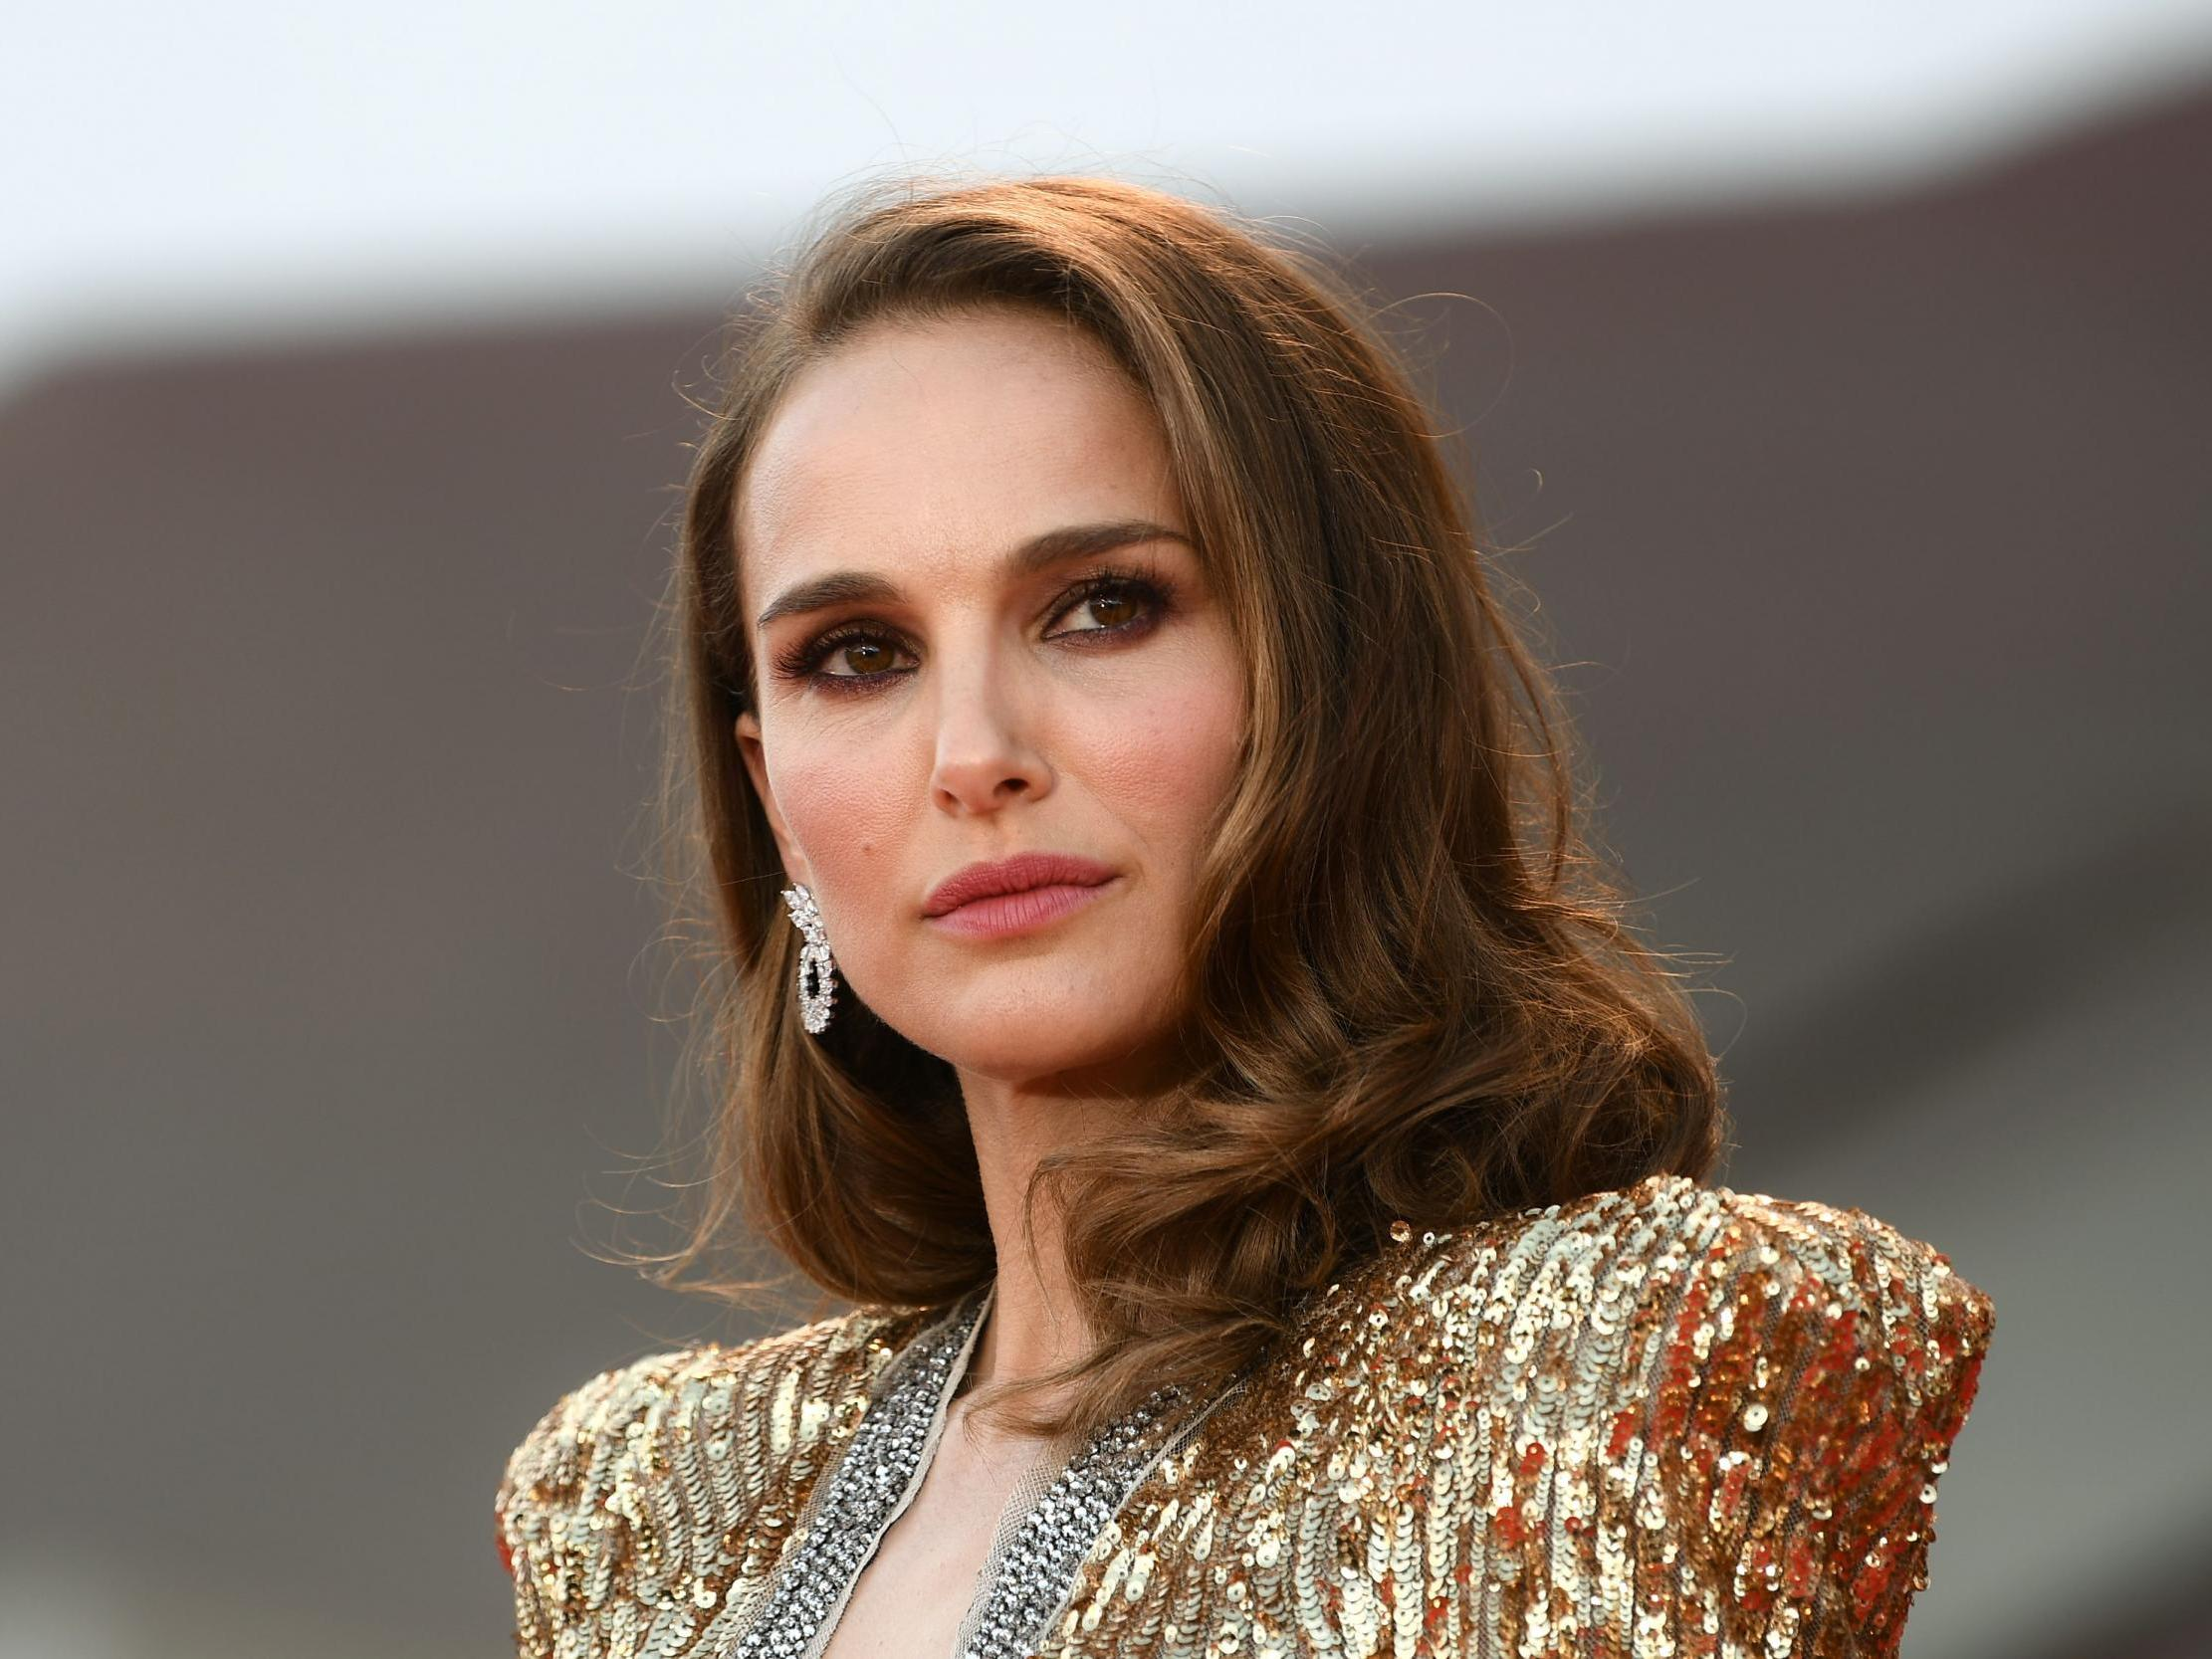 c5627752862 Natalie Portman - latest news, breaking stories and comment - The ...